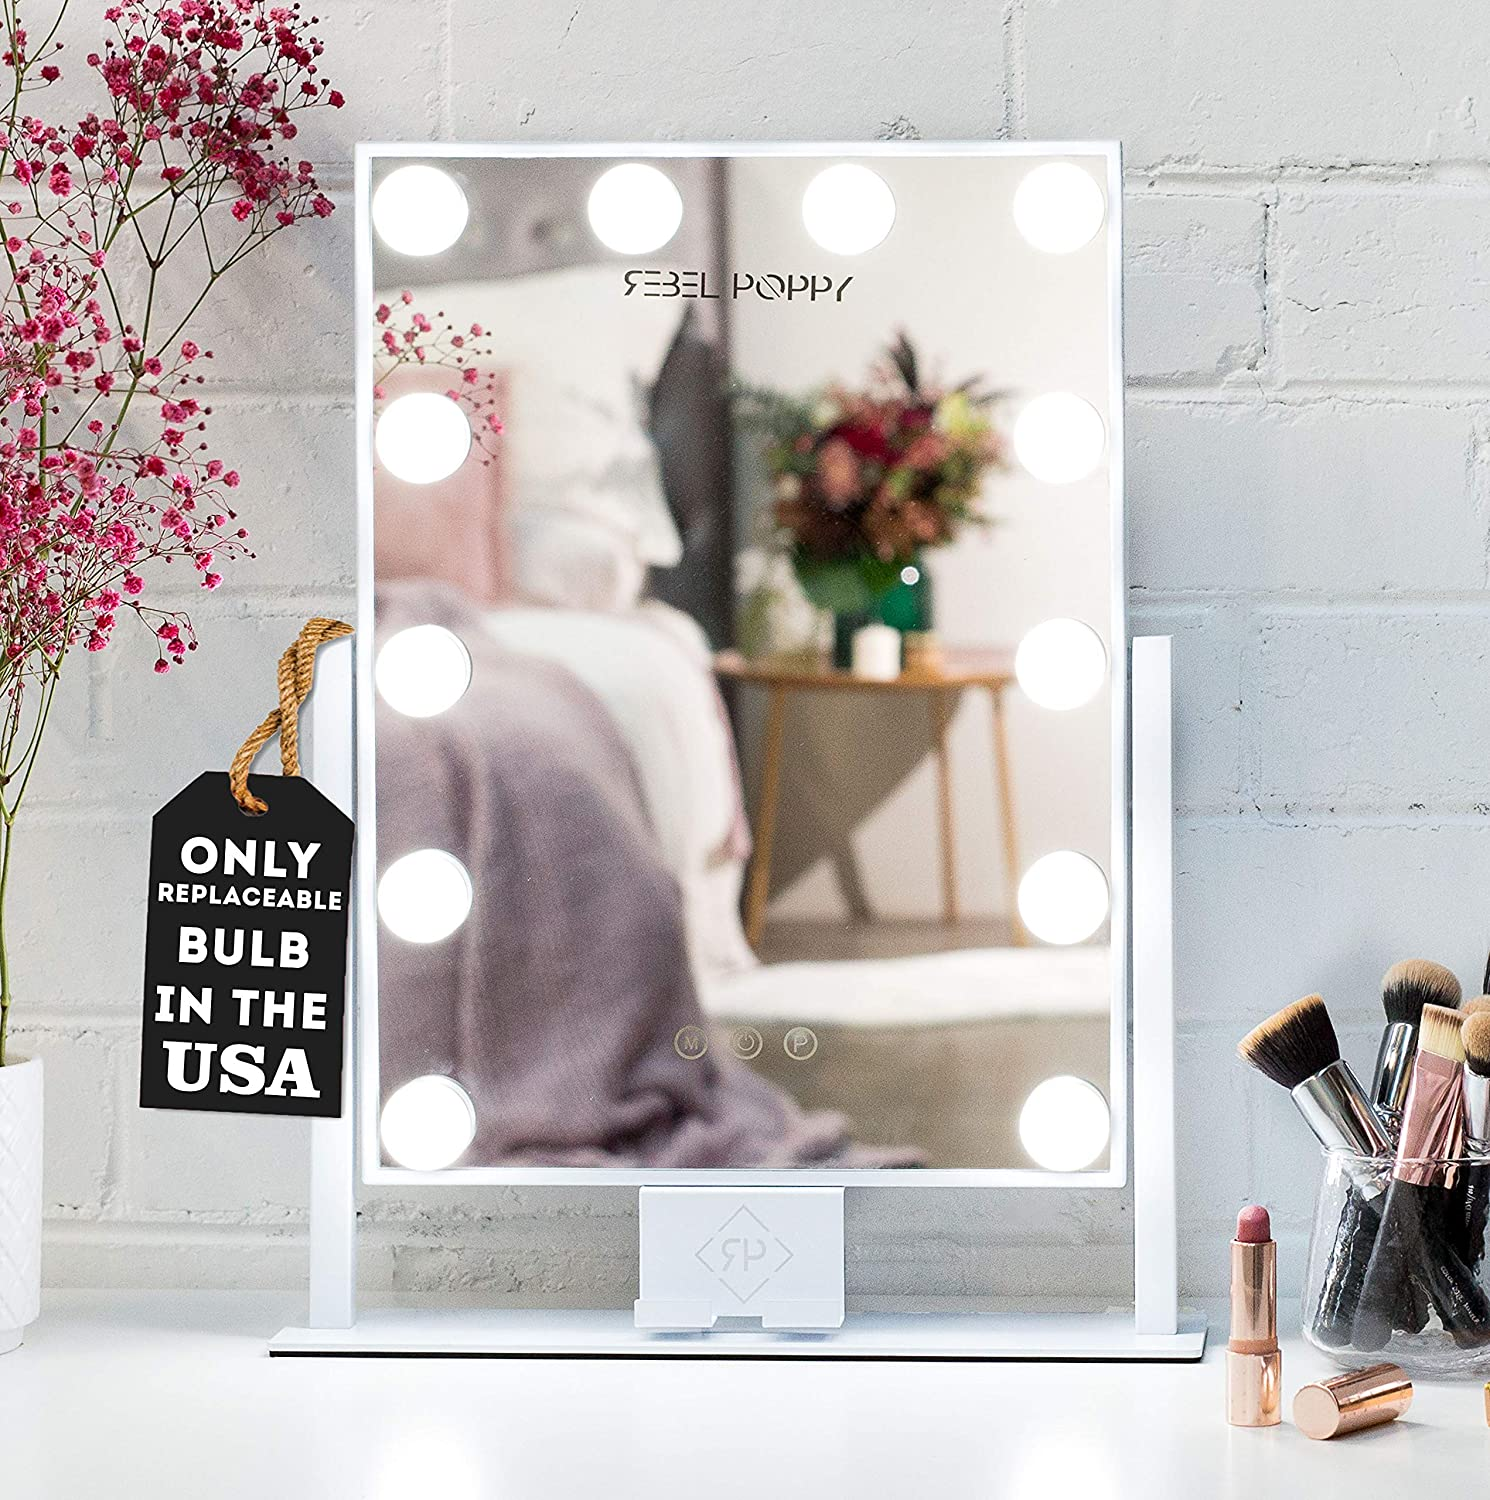 """REBEL POPPY Vanity Mirrors with LED Lights - Phone Mount, 3 Lighting Touch Control, 18.5"""" x 14.8"""", Fogless - Hollywood Lighted Makeup Mirror - White"""